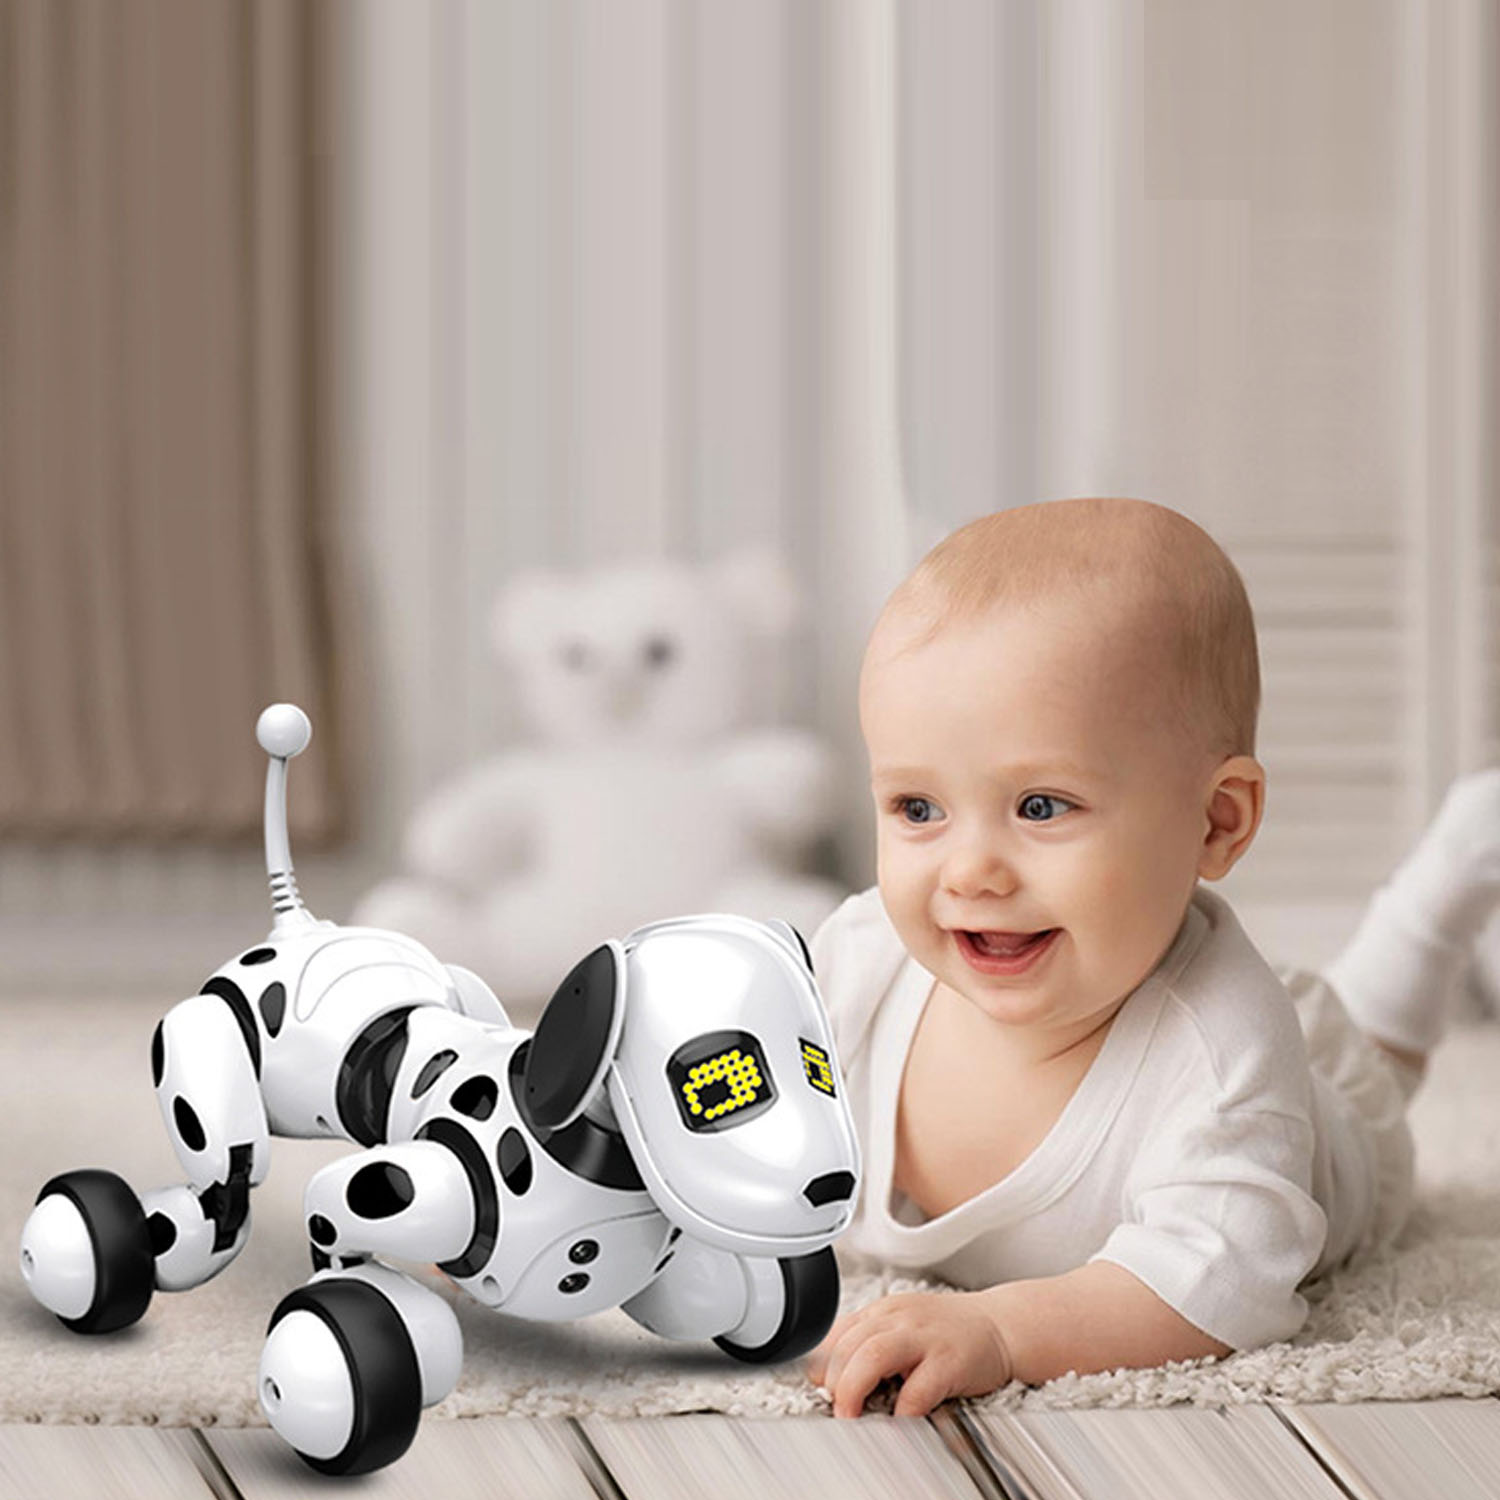 Electronic Control Robot Toy Cute RC Remote Wireless Interactive Robot Puppy Dog Toy Electronic Dog Toys For Kids Festival Gifts